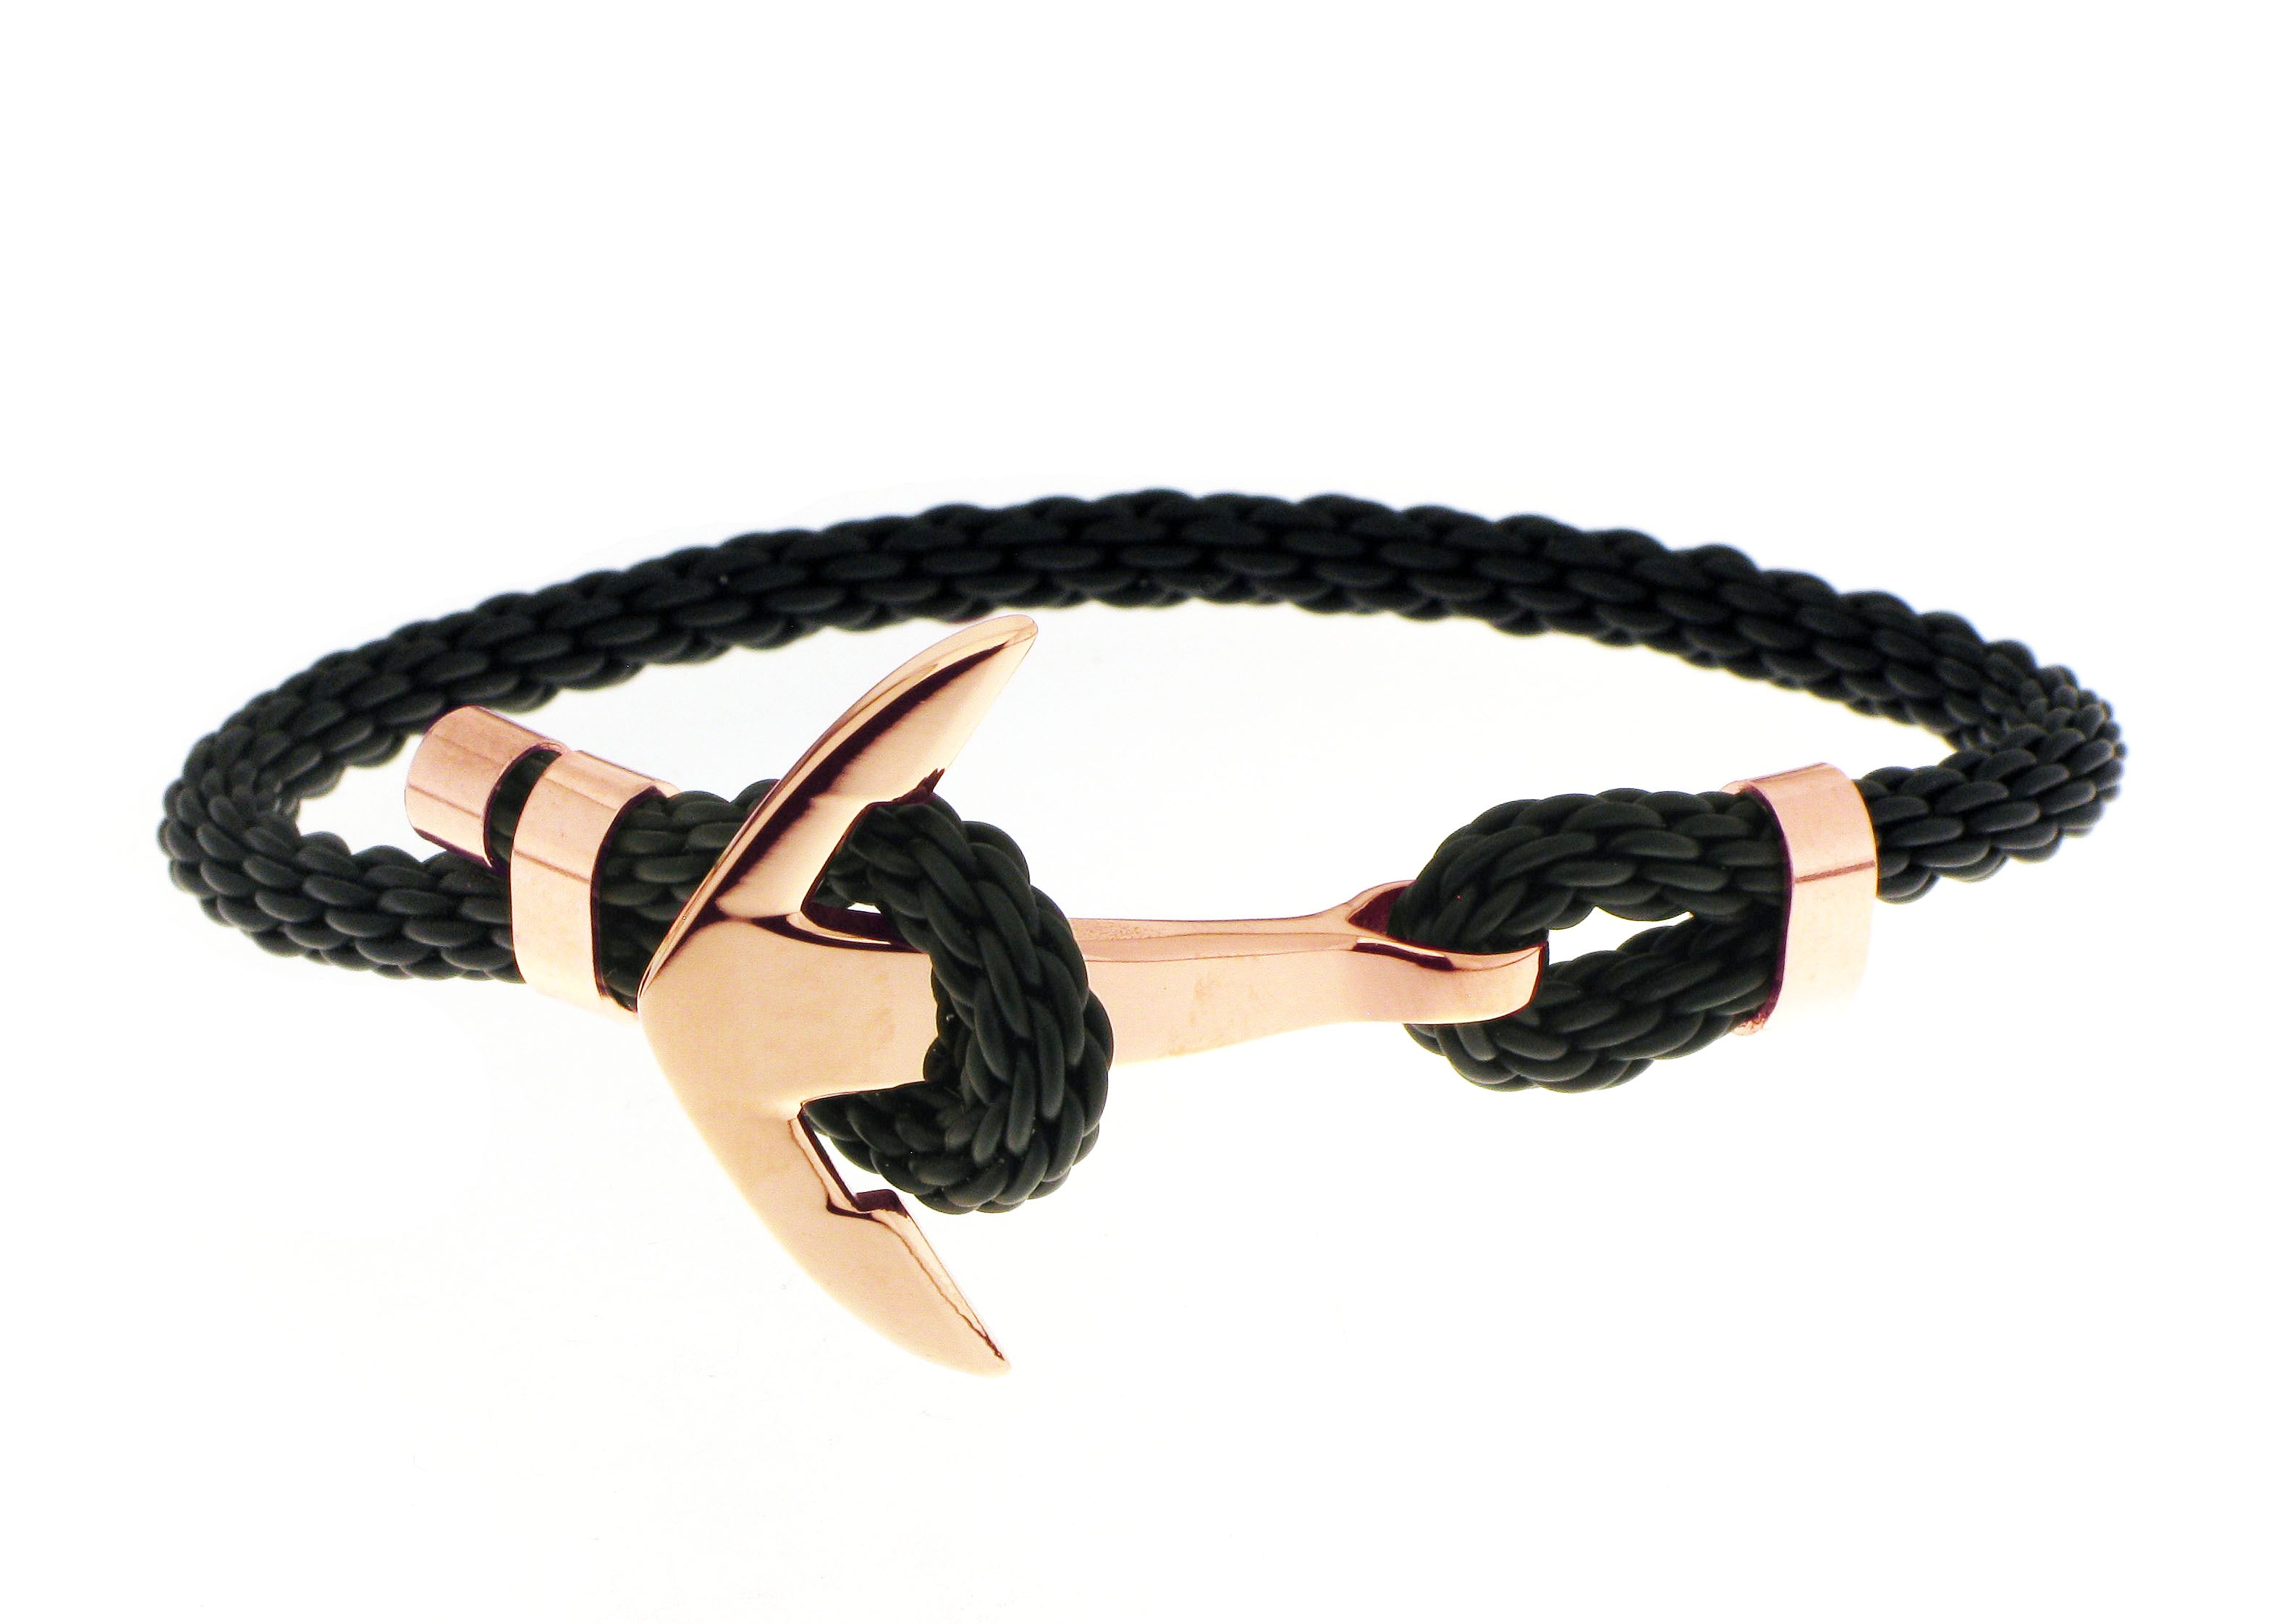 Anchor Bracelet - Black / Rose Gold Accent